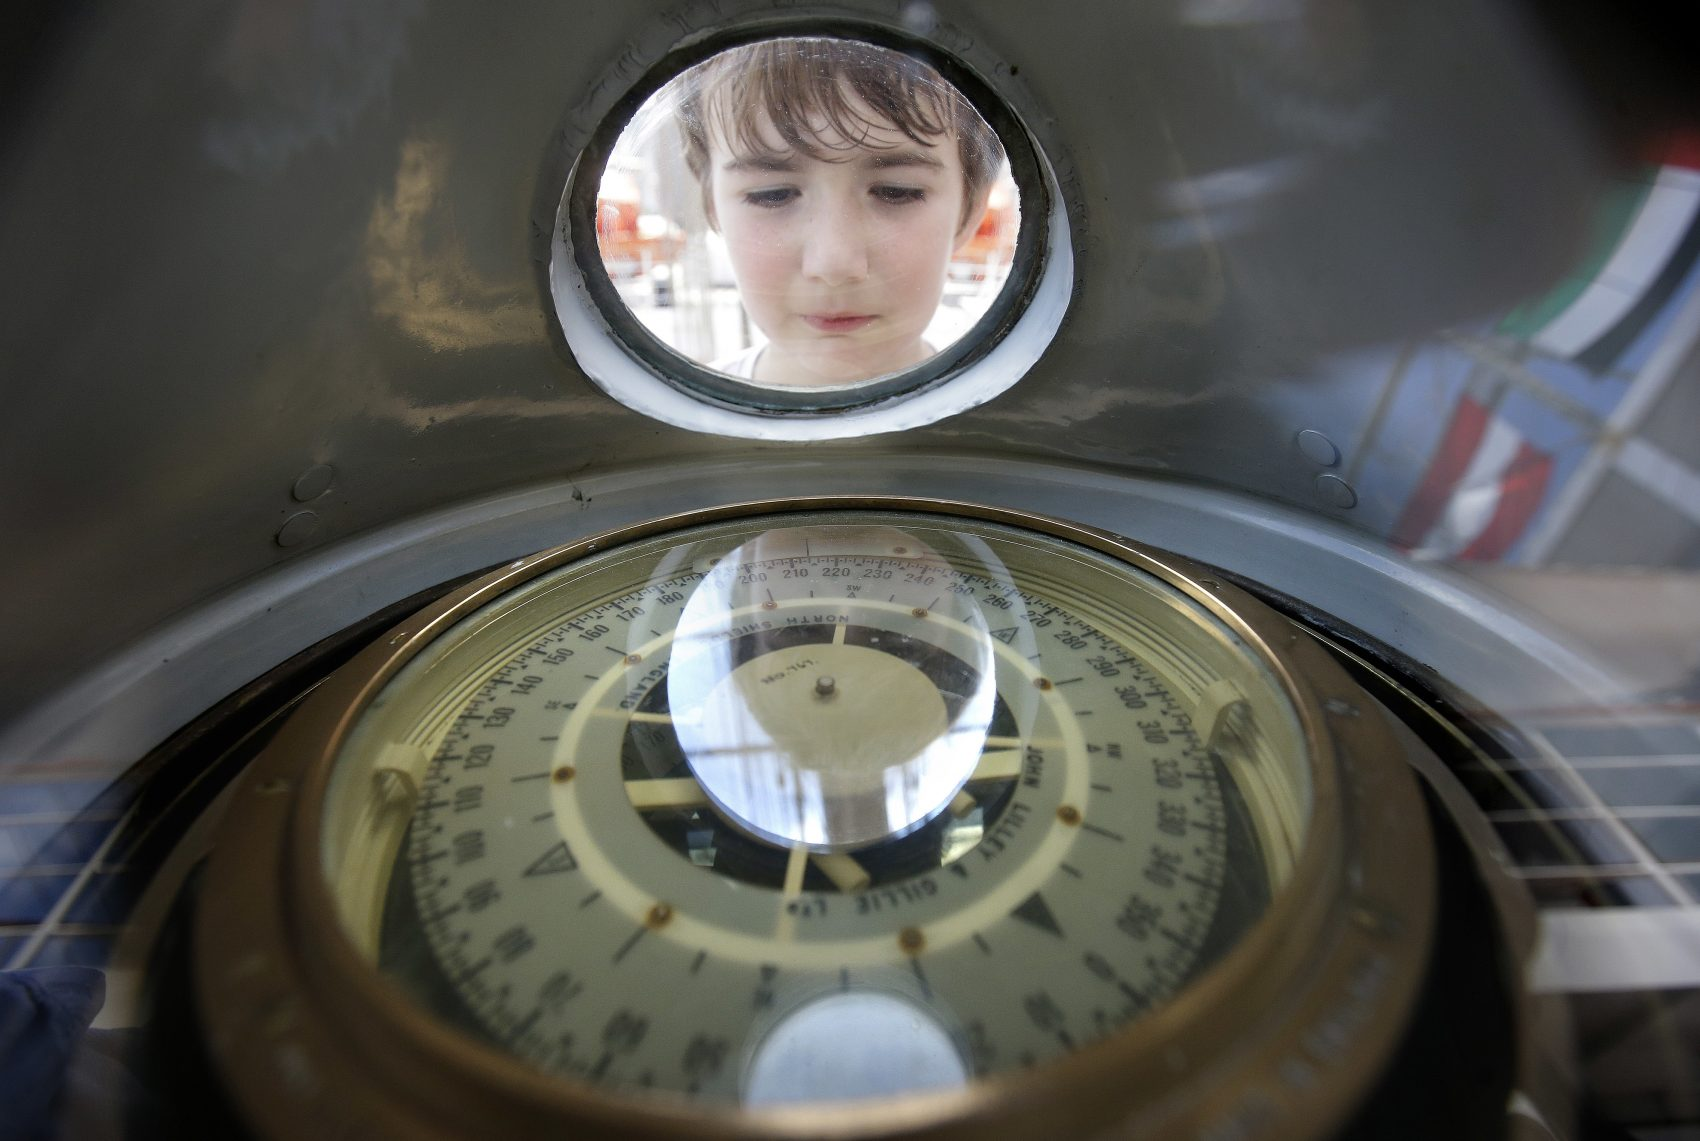 Sean Sullivan, 8, of Wellesley, Mass., examines a compass aboard the Peruvian Navy tall ship Union, which was open to the public to visitors on Sunday. (Steven Senne/AP)